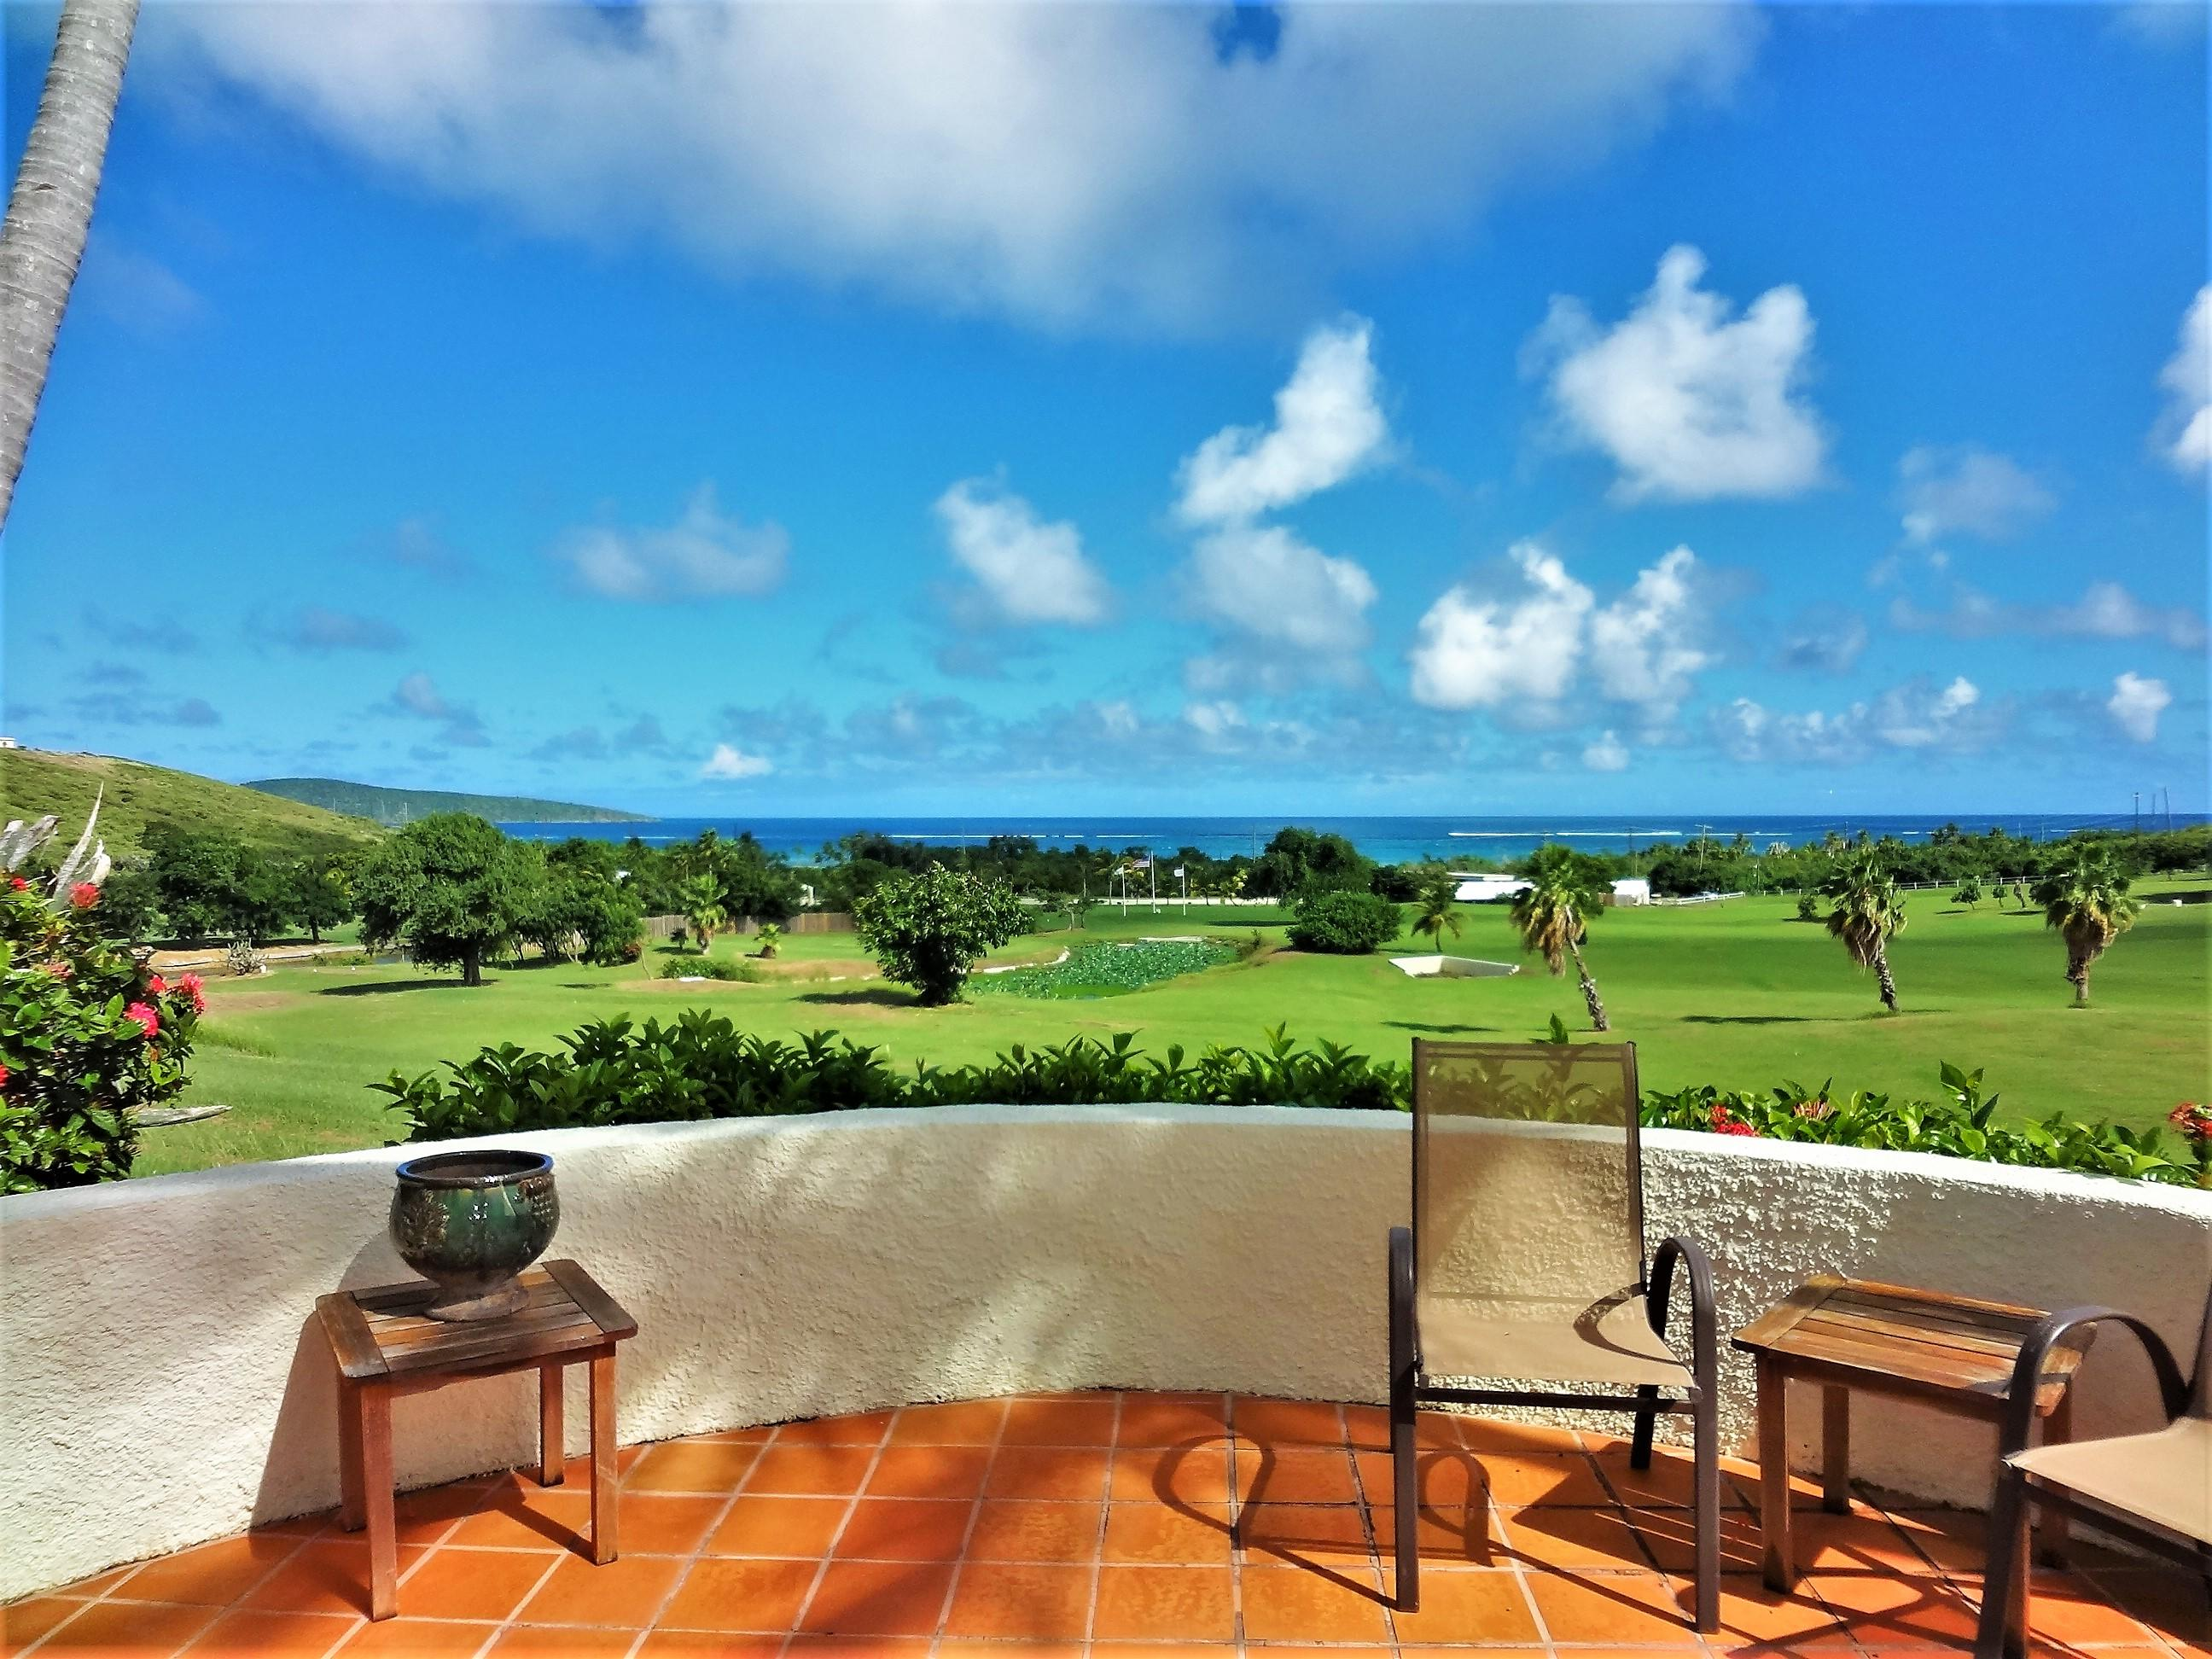 Condominium for Sale at The Reef 441 Teagues Bay EB The Reef 441 Teagues Bay EB St Croix, Virgin Islands 00820 United States Virgin Islands